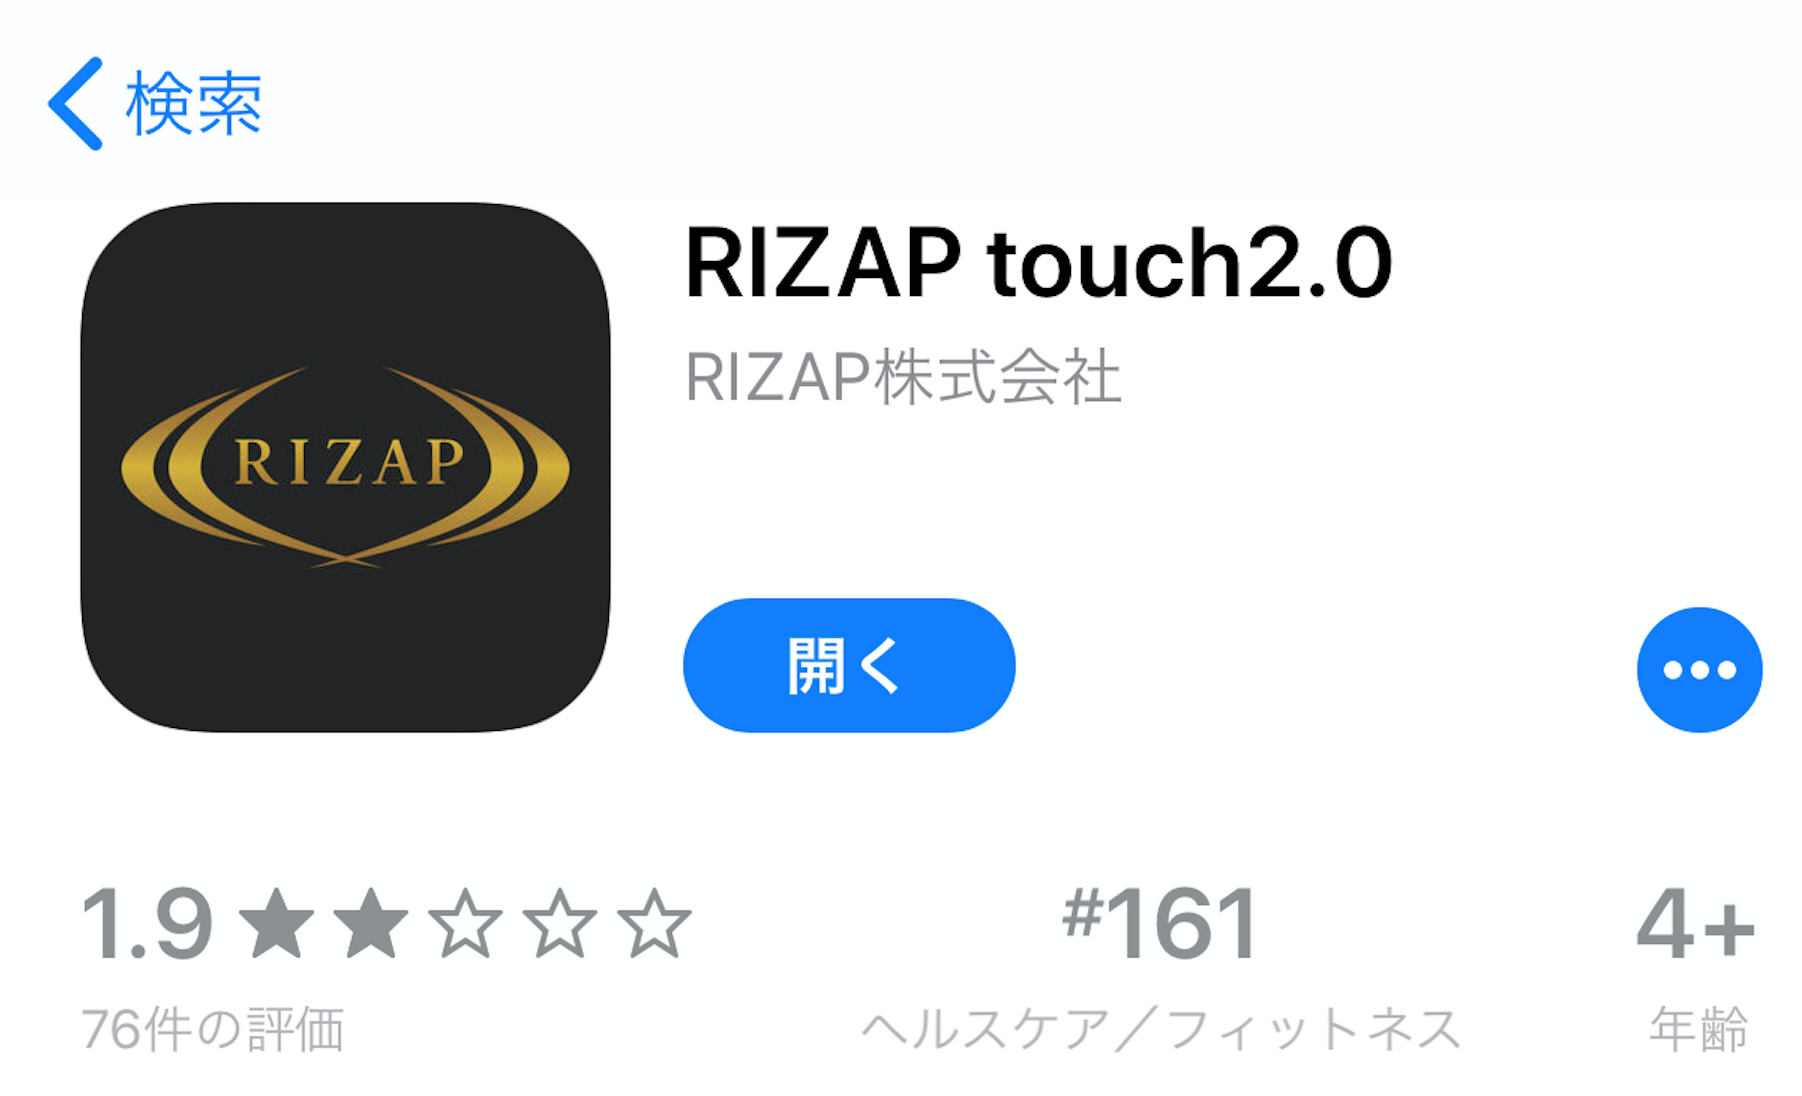 RIZAPtouch2.0